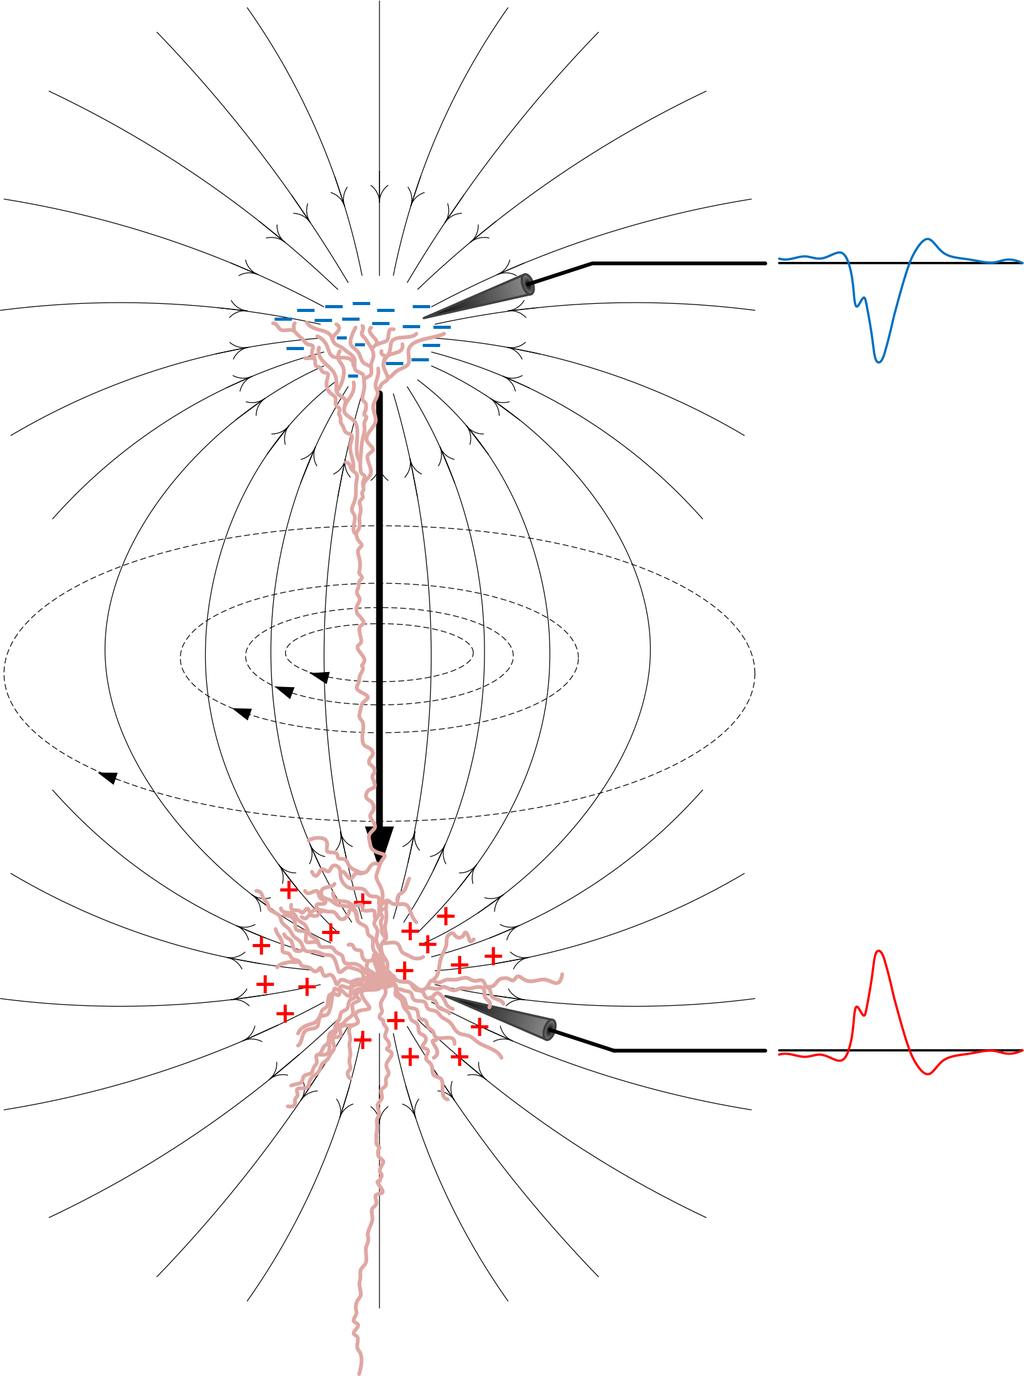 spiking neuron research papers Mechanism of bistability: tonic spiking and bursting in a neuron model andrey shilnikov department of mathematics and statistics, georgia state university, atlanta.